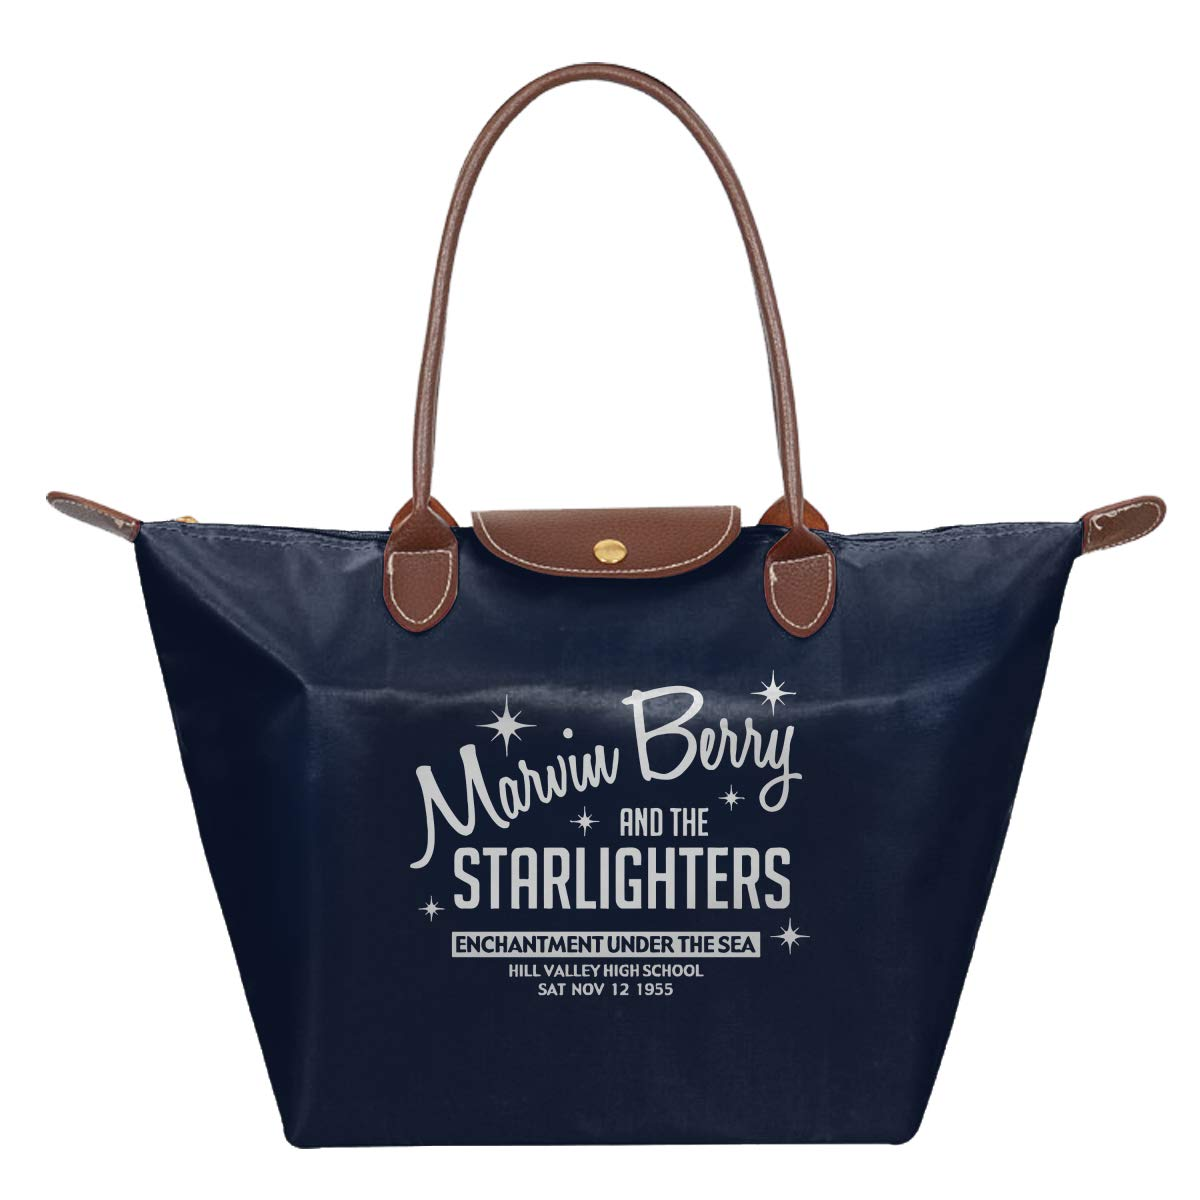 Marvin Berry And The Starlighters Inspired By Back To The Future Waterproof Leather Folded Messenger Nylon Bag Travel Tote Hopping Folding School Handbags